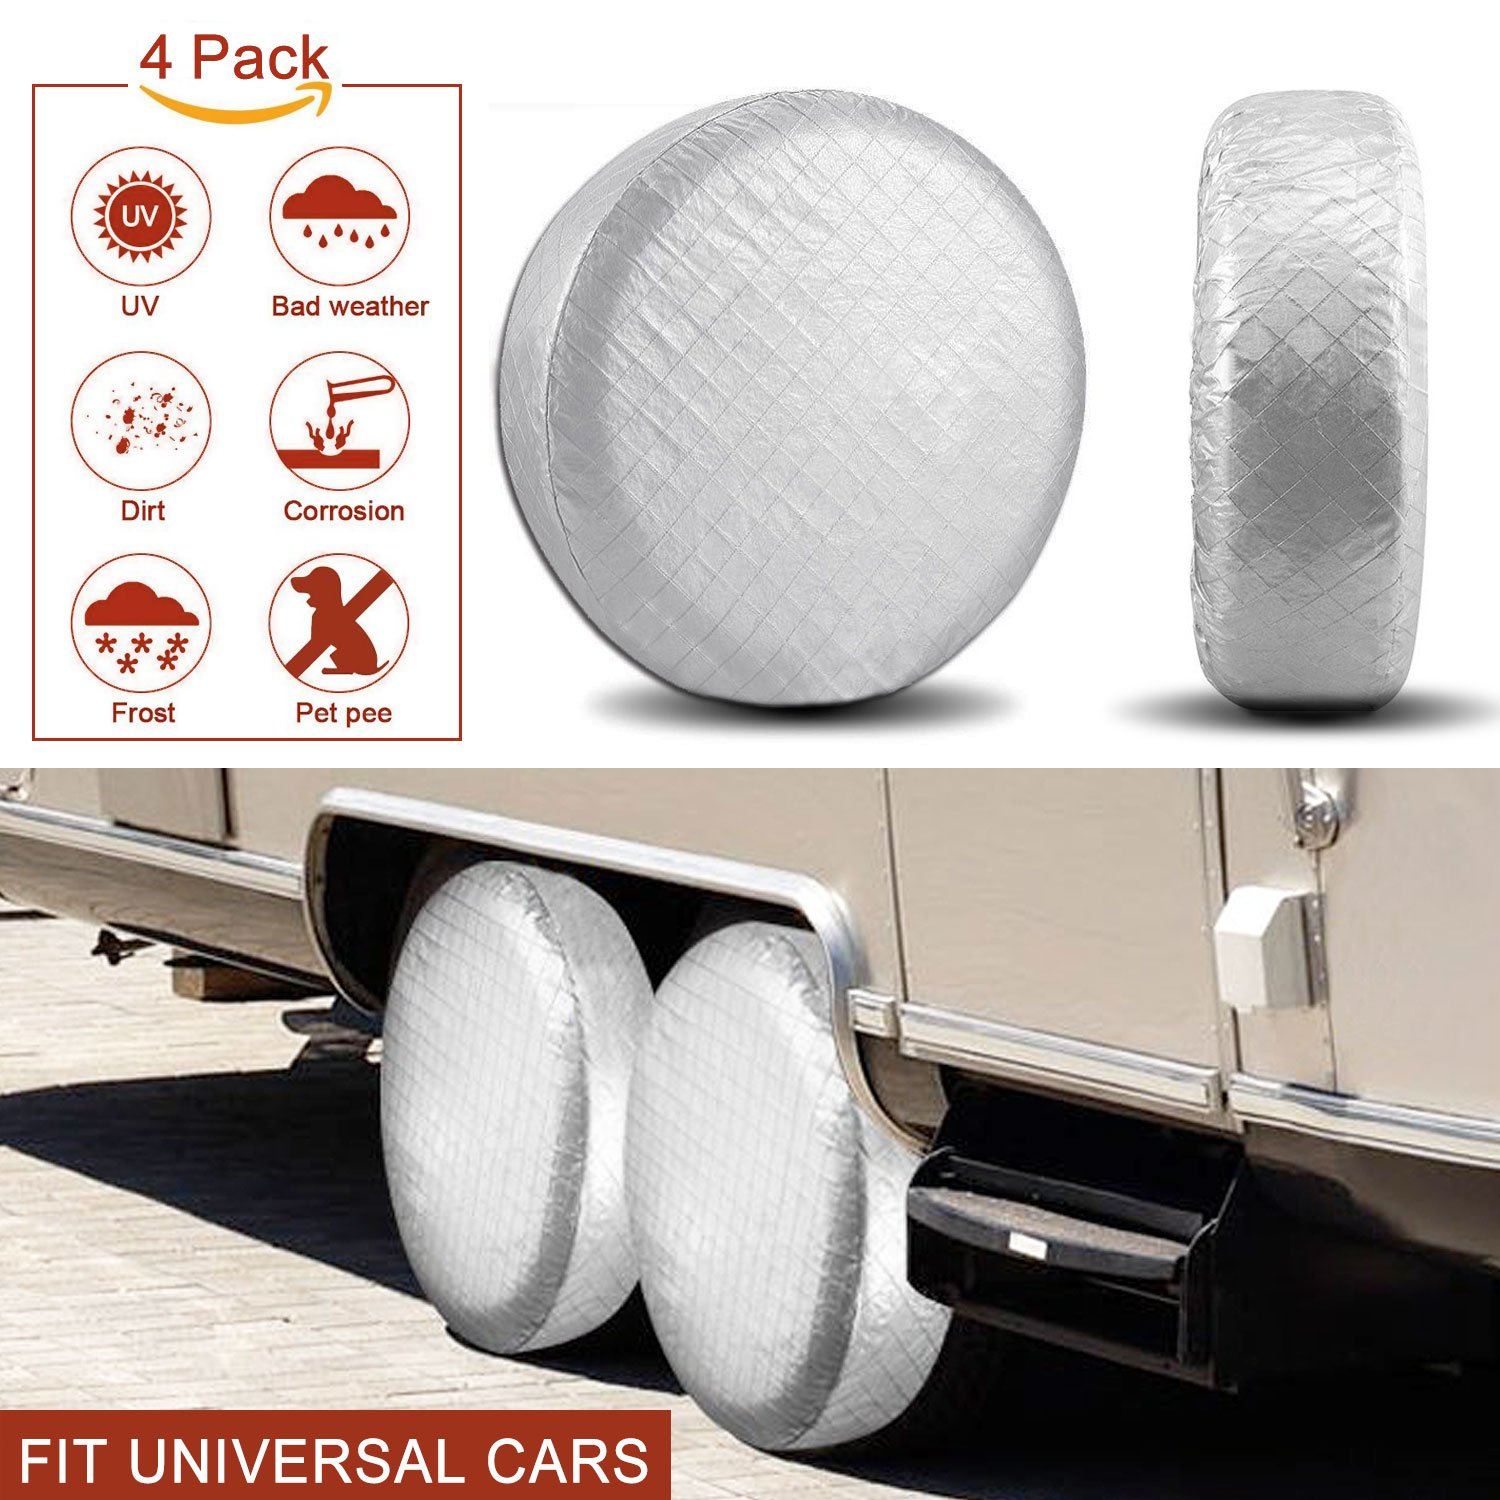 YBB Set of 4 for RV Wheel & Tire Covers Suit for Camper, Travel Trailer Tire Covers, Fits 33' to 35' Tire Diameters, Weatherproof, Dust, Waterproof, Sun Tire Protectors (33-35 inches) Fits 33 to 35 Tire Diameters